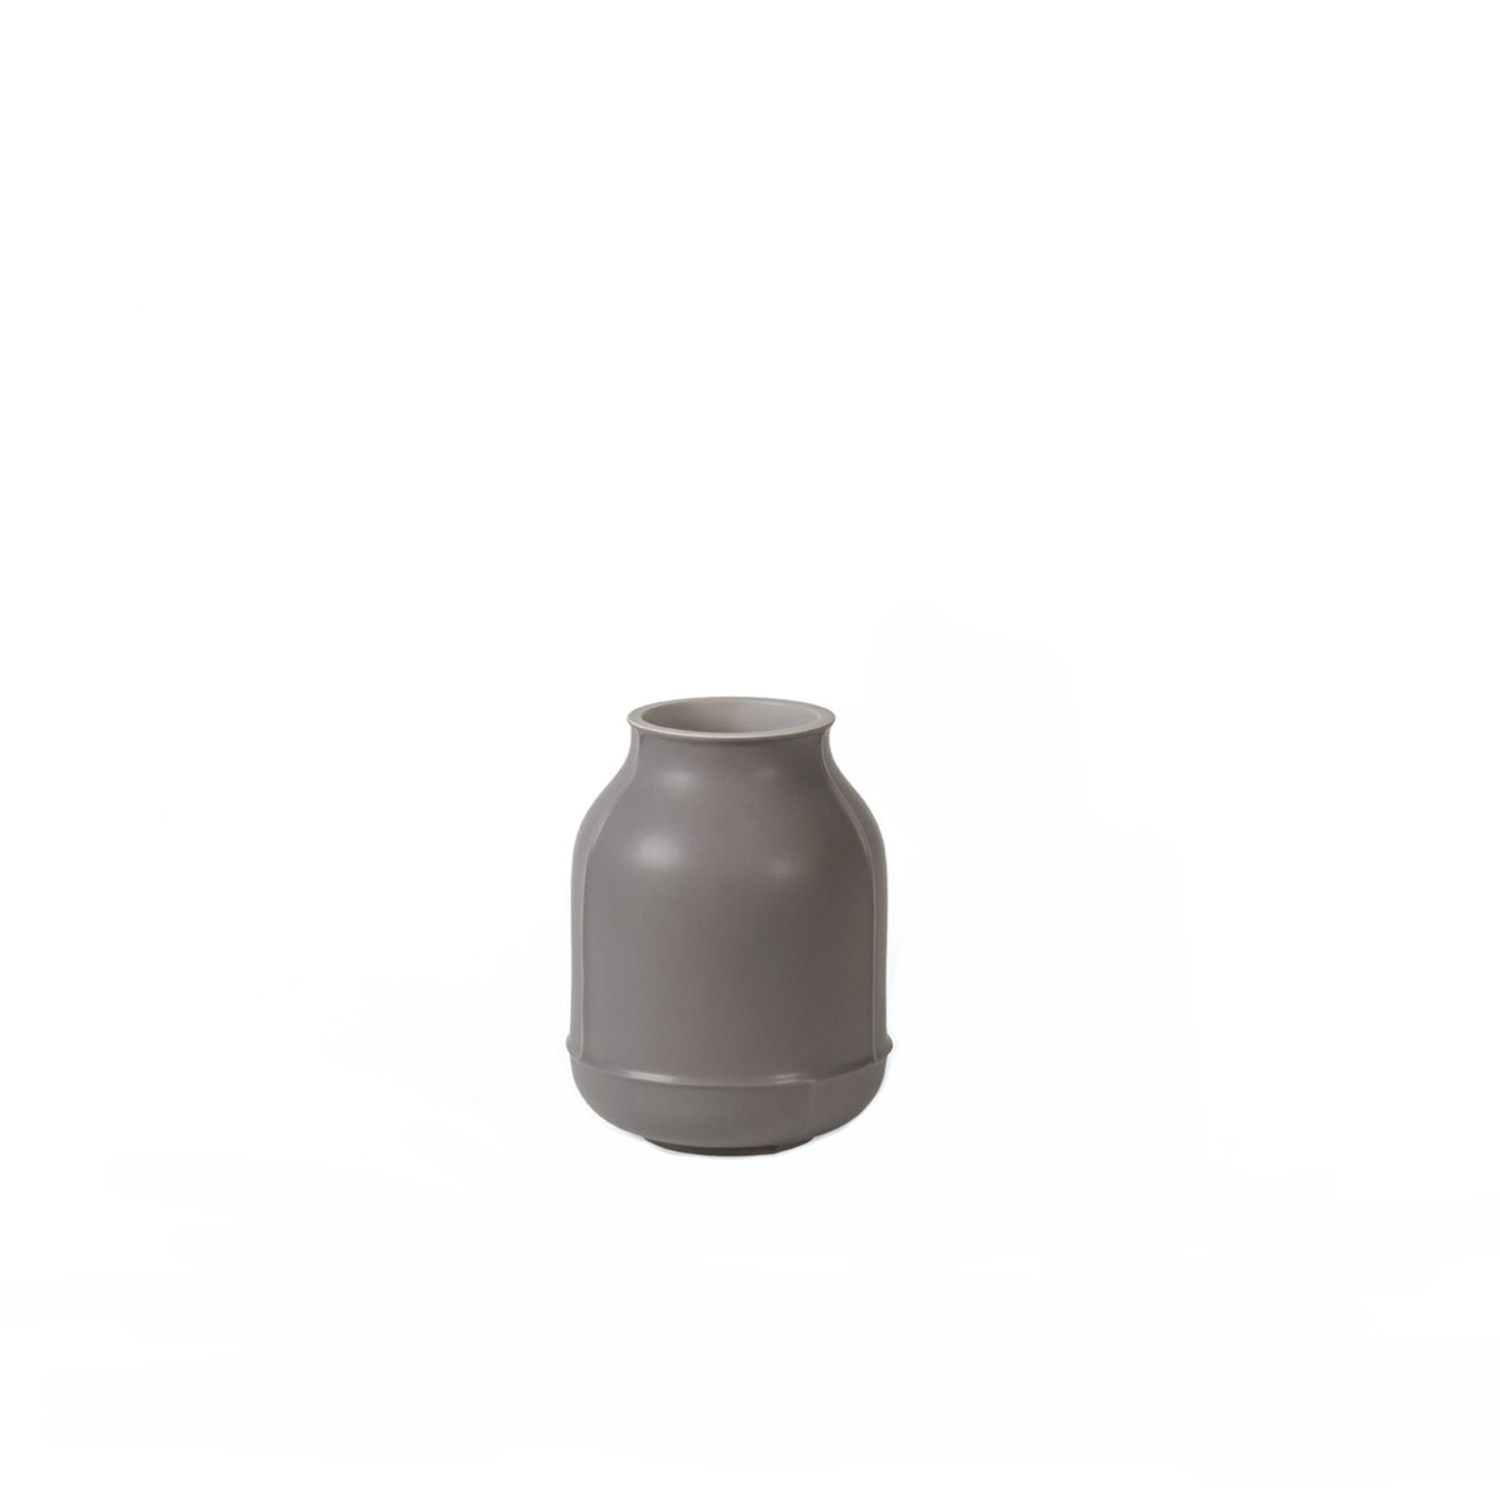 Small Grey Barrel Vase - Made of white clay, this refined vase of the Seams Collection is inspired by the archetypal jar and bottle silhouettes of the classic ceramic tradition, reinterpreted in a modern key by designer Benjamin Hubert. The defining feature of the pieces is represented by the decorative seam lines that were intentionally left after the mold casting was removed to create a distinctive aesthetic detail. Featuring a rounded base and small mouth, this vase boasts a two-color matte glaze, gray on the outside and blue inside. | Matter of Stuff